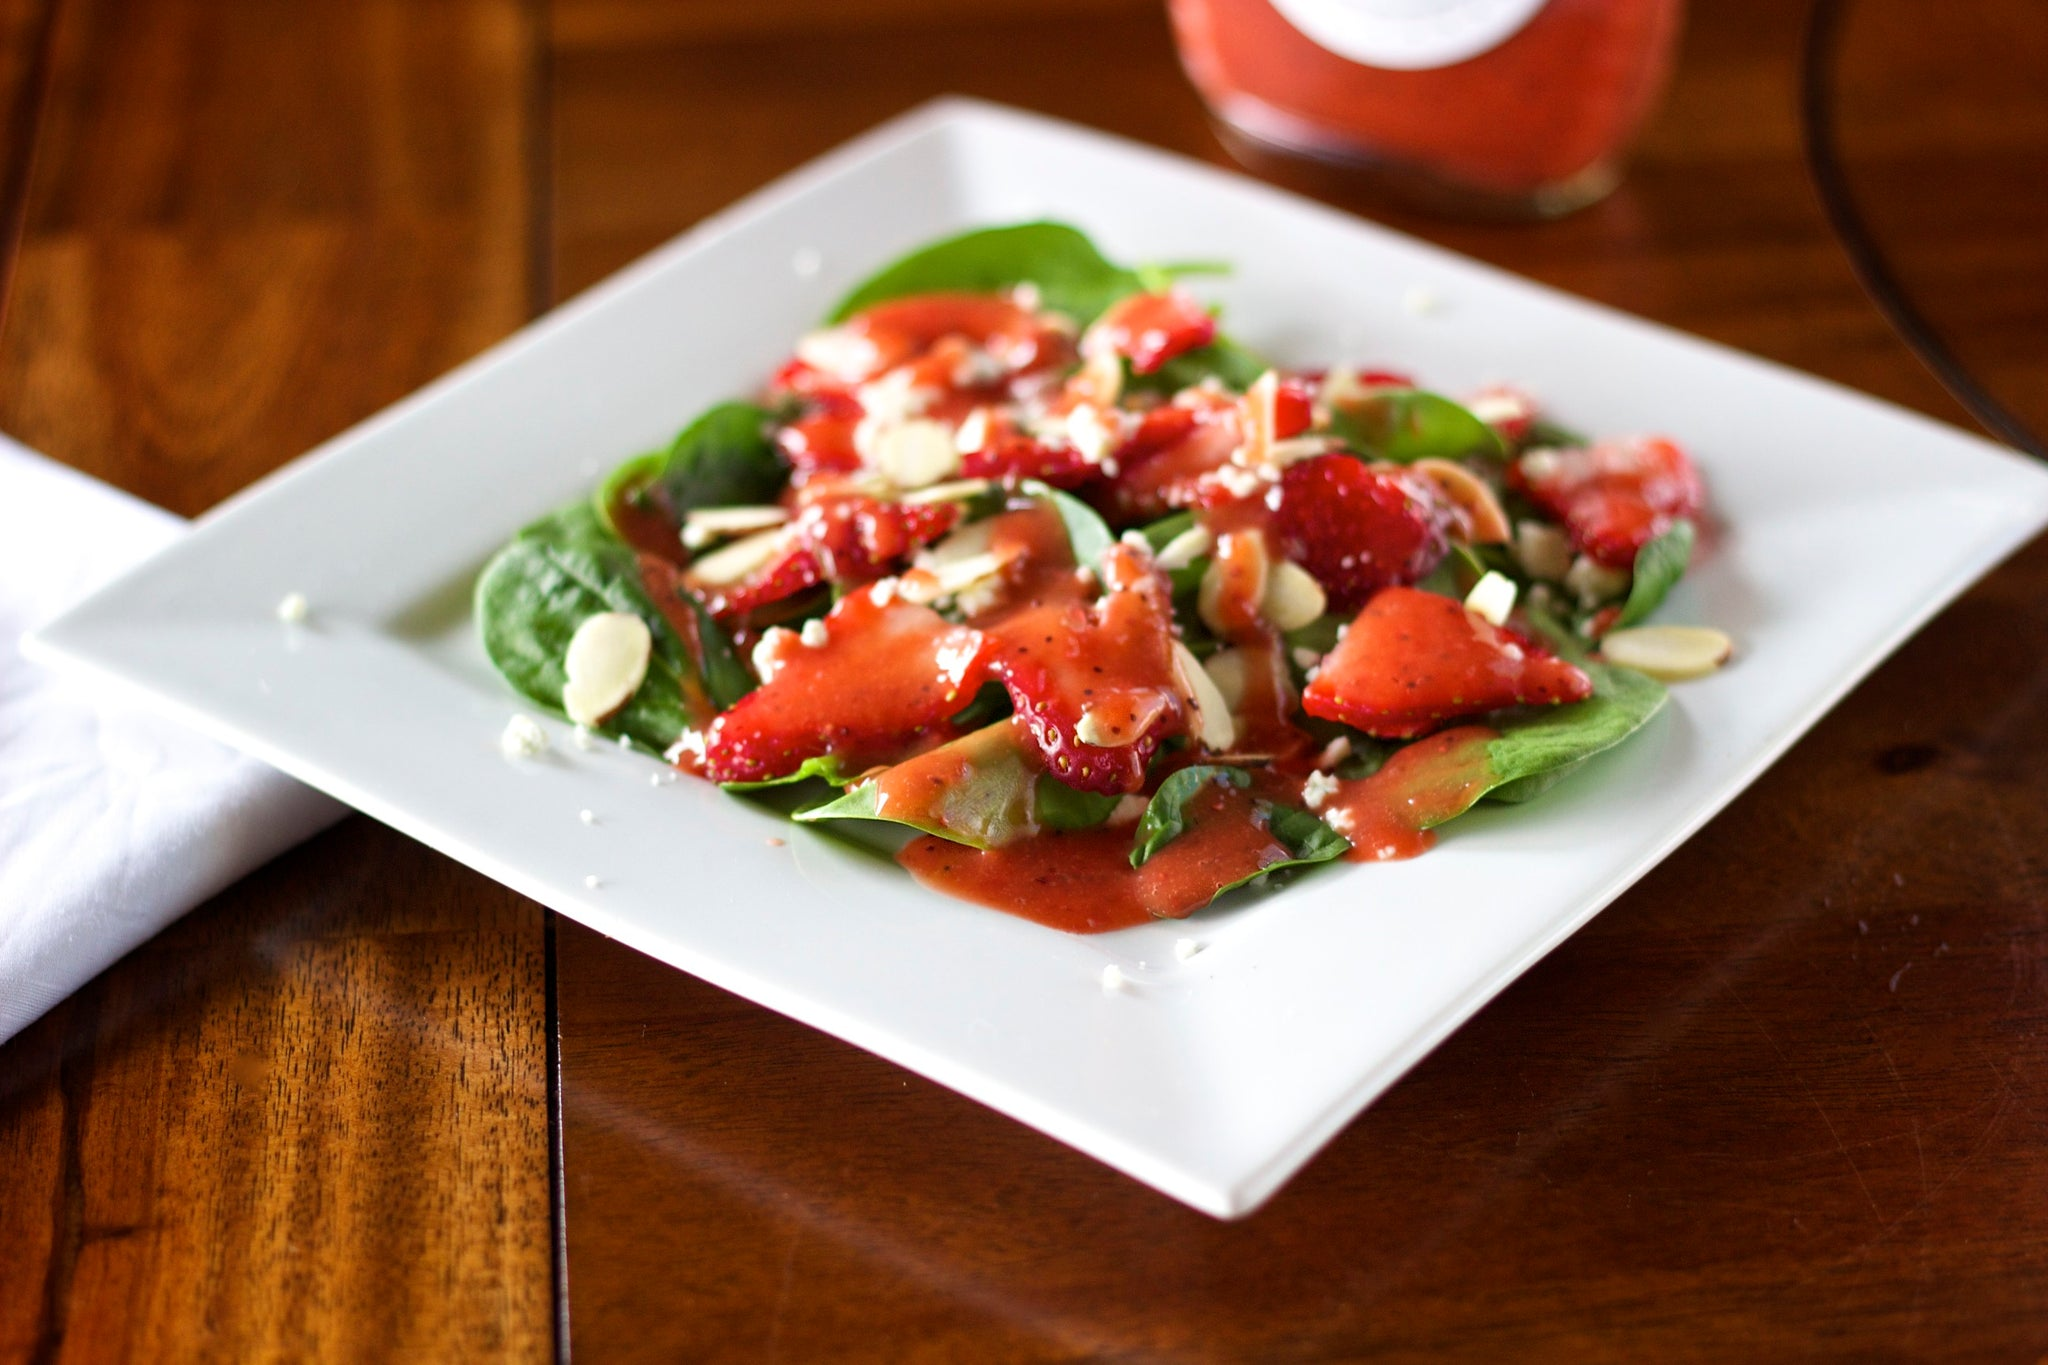 Strawberry vinaigrette, Dressings - Hanley's Foods